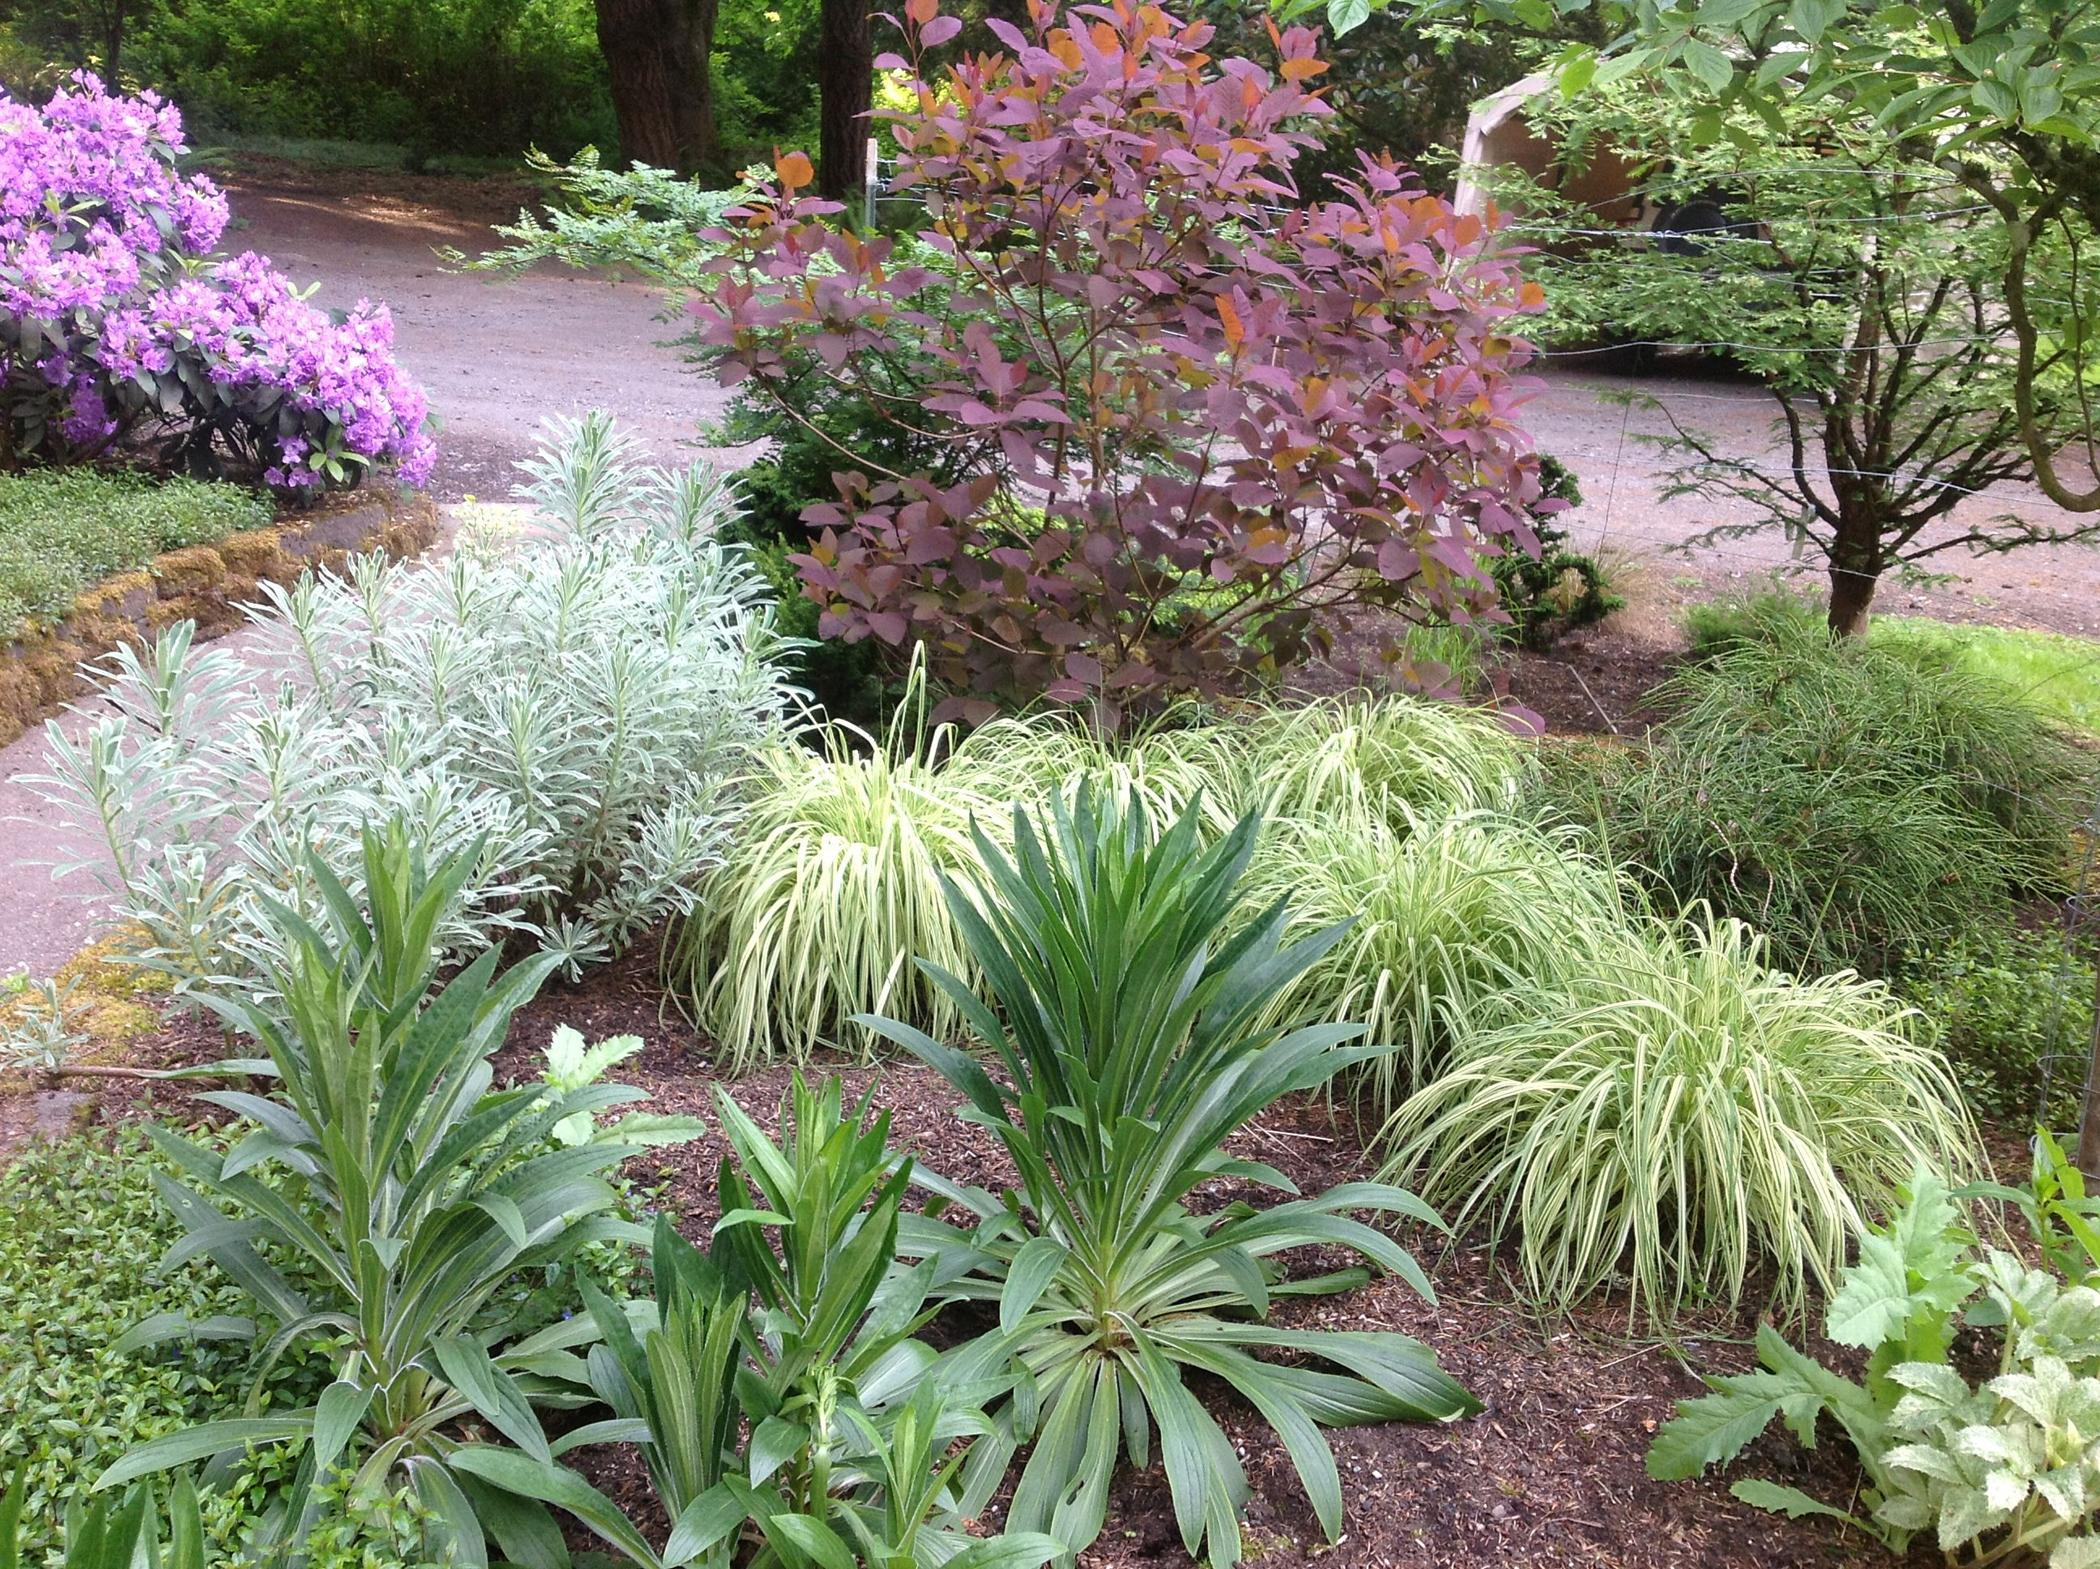 On Saturday, June 22, you are cordially invited to five private gardens in Bainbridge Island, through the Garden Conservancy Open Days program, 10 a.m. to 4 p.m. The Open Day is rain or shine, and no reservations are required. Admission is $10 per garden; children 12 and under are free. 4895 Rose Avenue. This is a large, eight-acre property that includes multiple gardens, both enclosed and integrated into the surrounding field and forest, with a wide array of flowers, unusual plants, and exotic trees, as well as sculptures and other artwork throughout (Image courtesy of Stephanie Werskey).